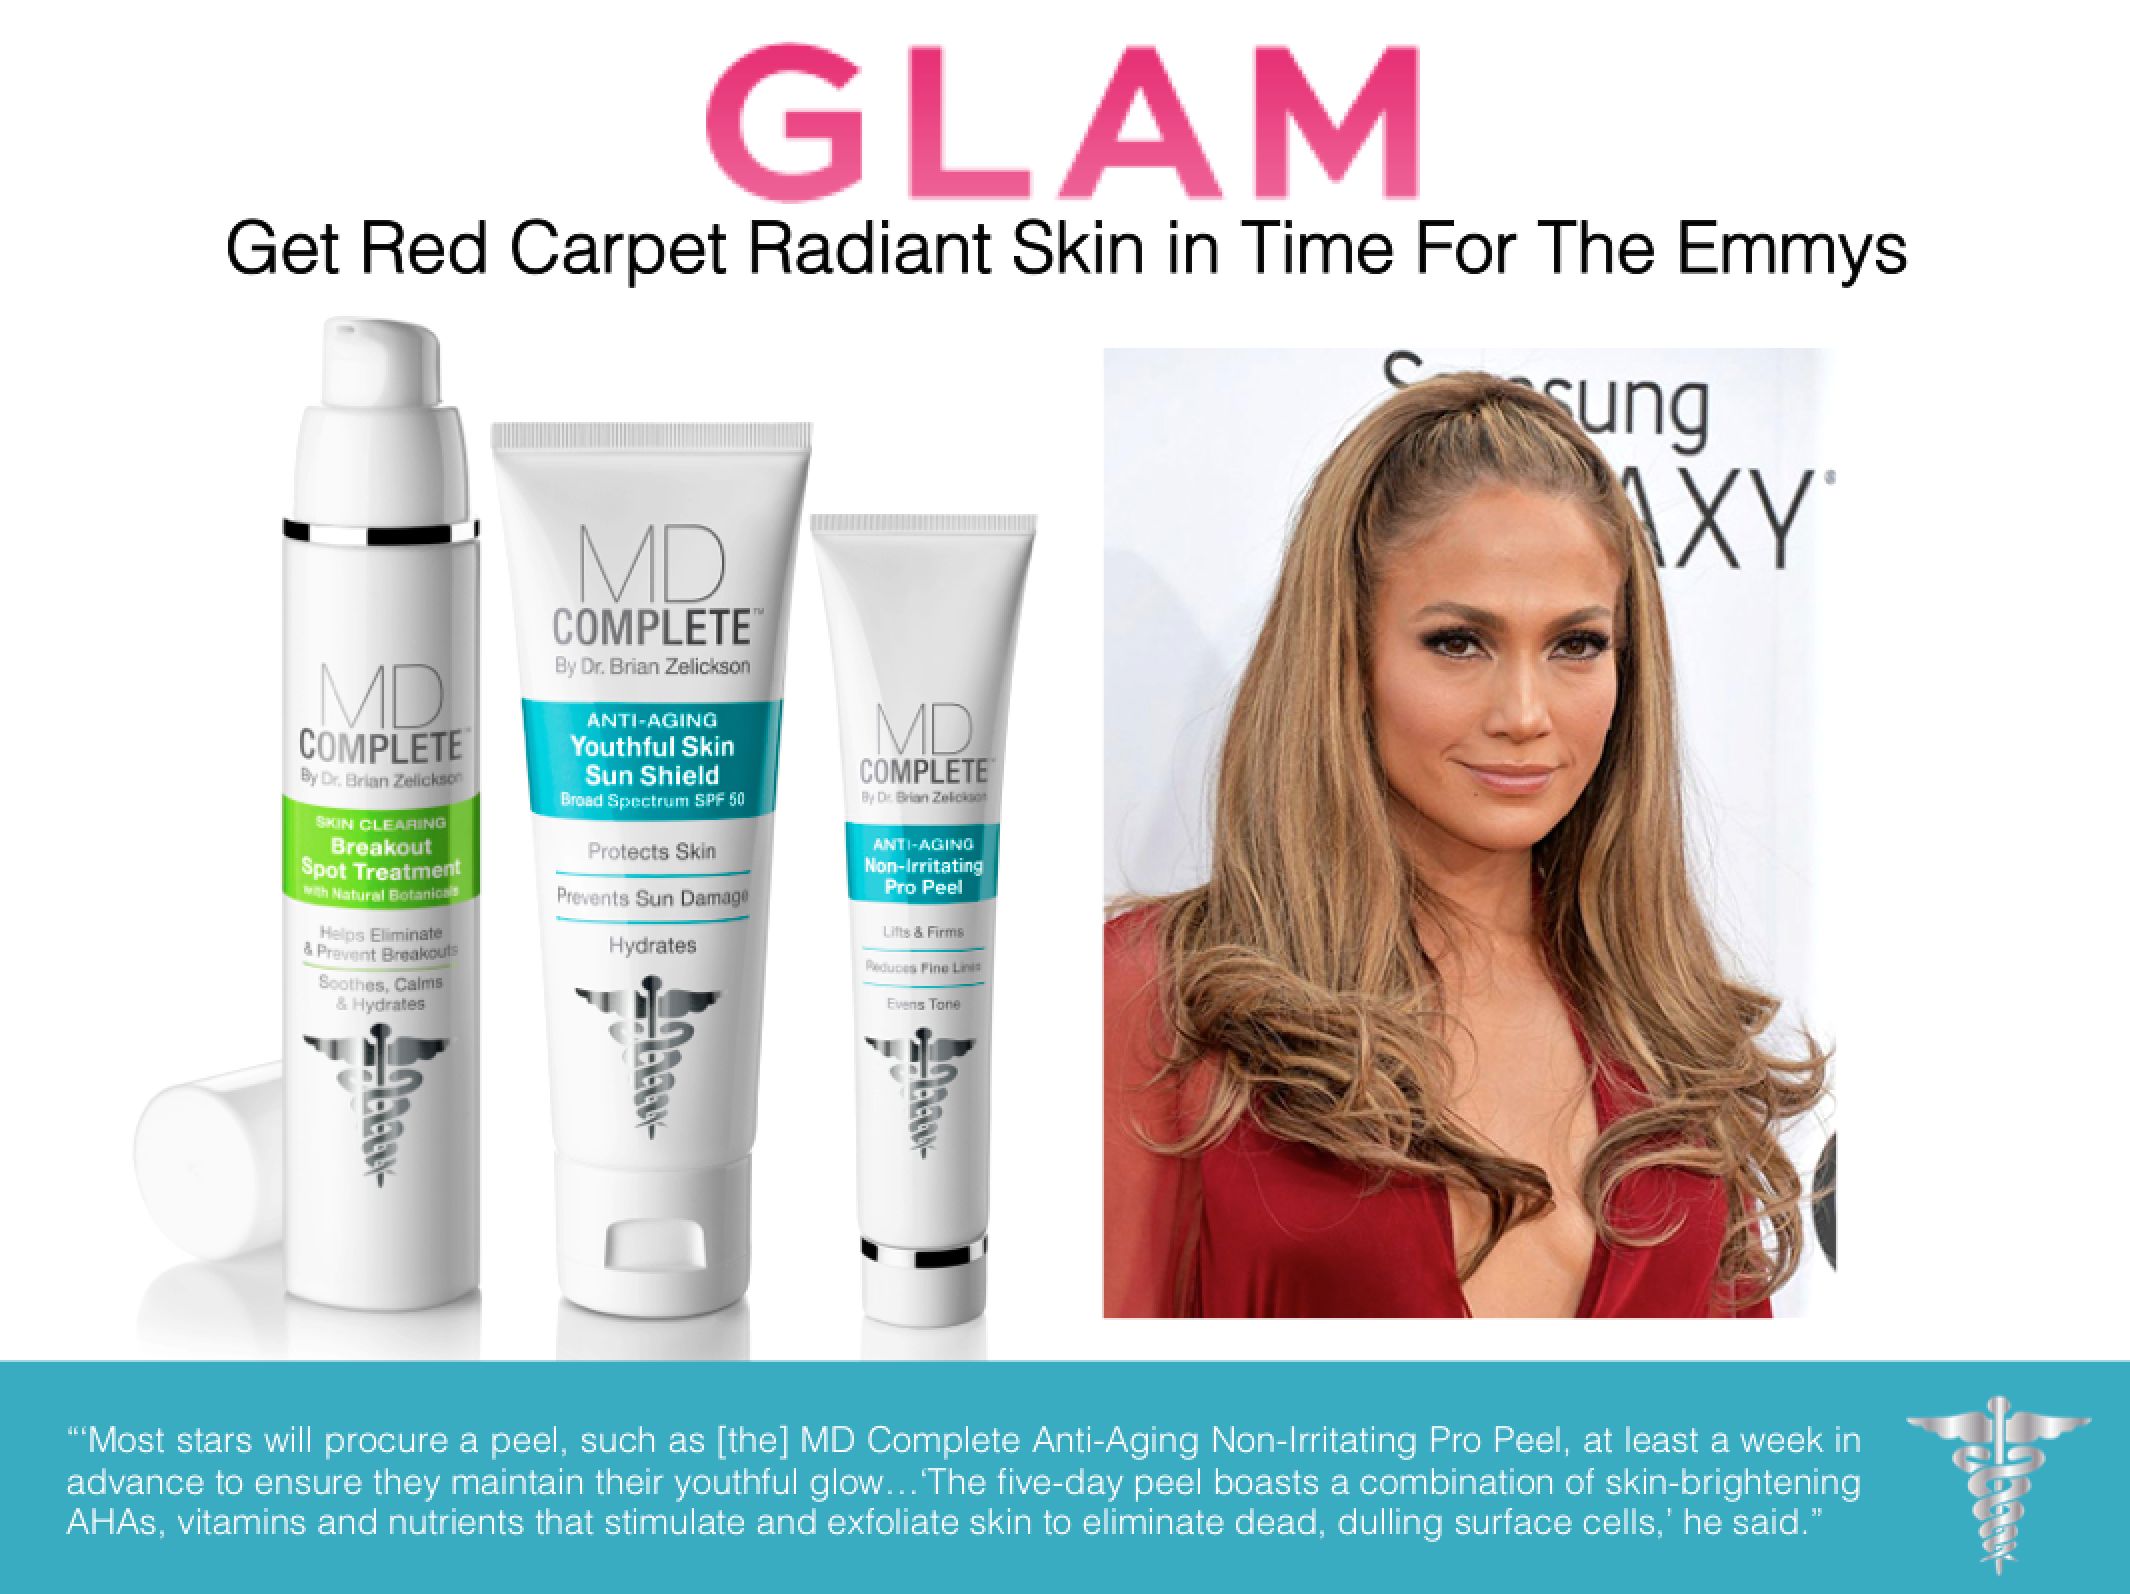 Did You Catch Md Complete In Glam S Red Carpet Radiant Article The Emmys Aging Skin Radiant Skin